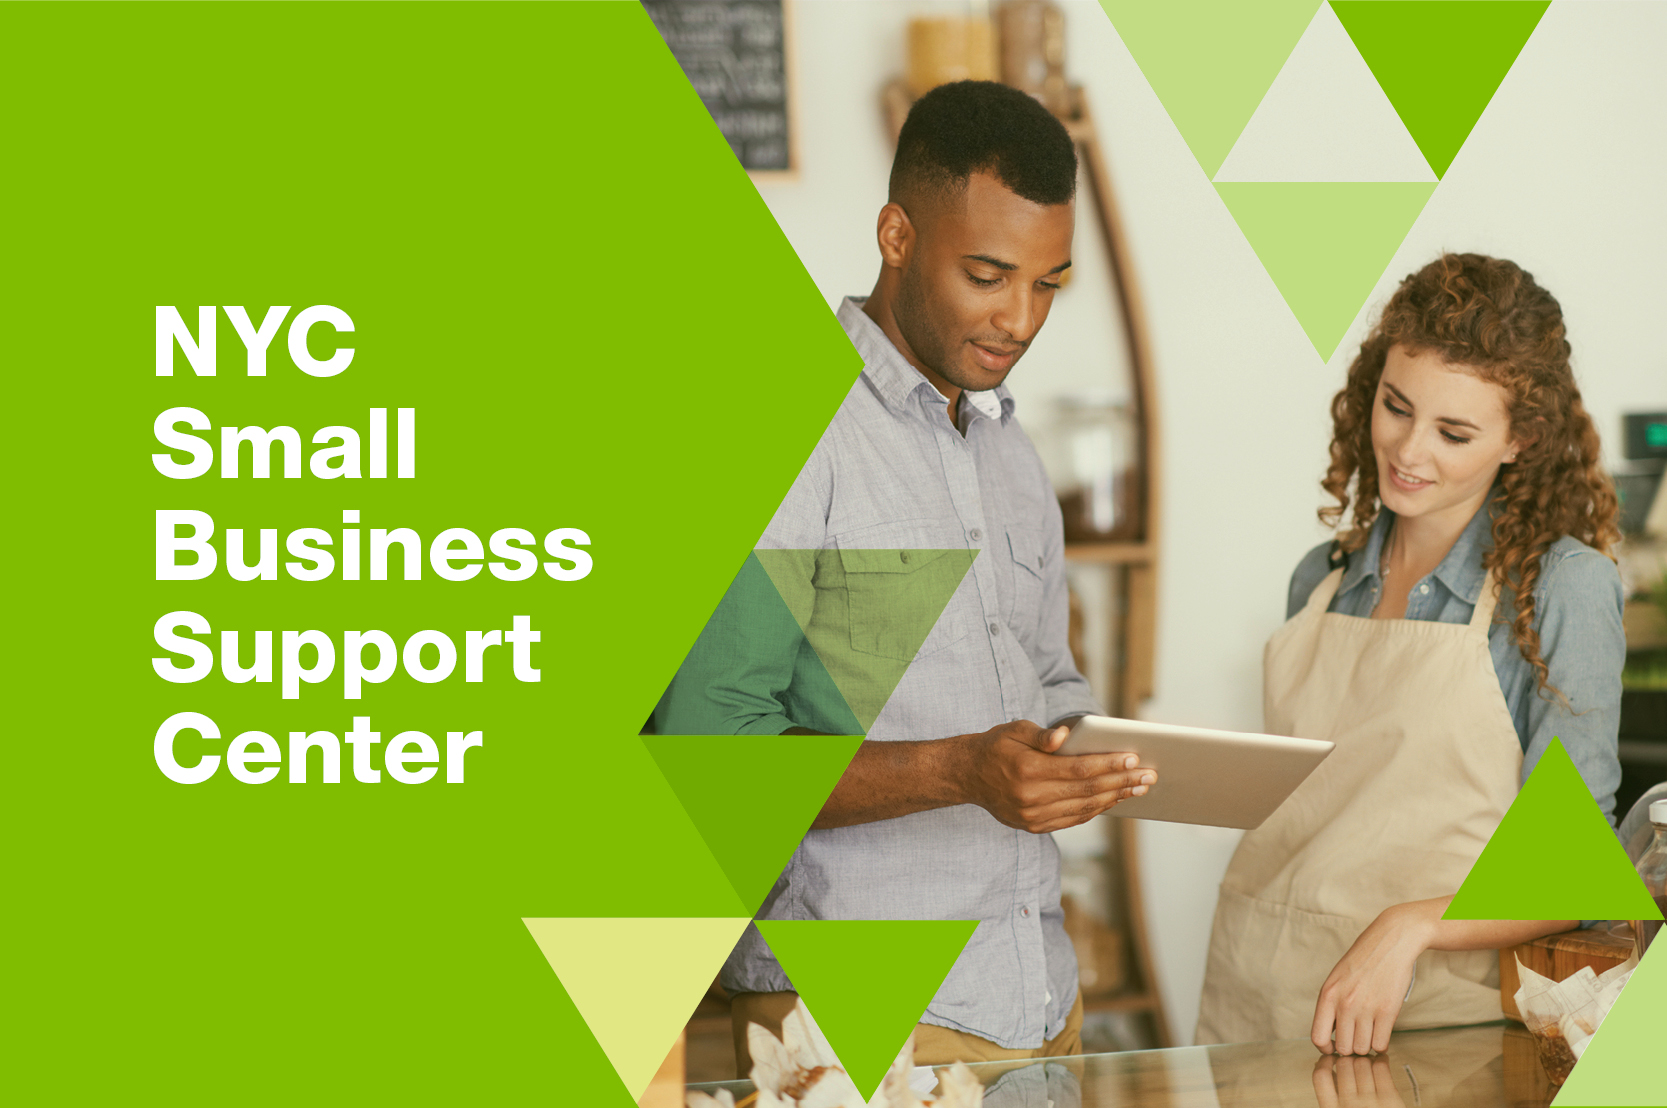 The words NYC Small Business Support Center are on the left on a green background and on the right there is a man and a woman in a store looking at a tablet.